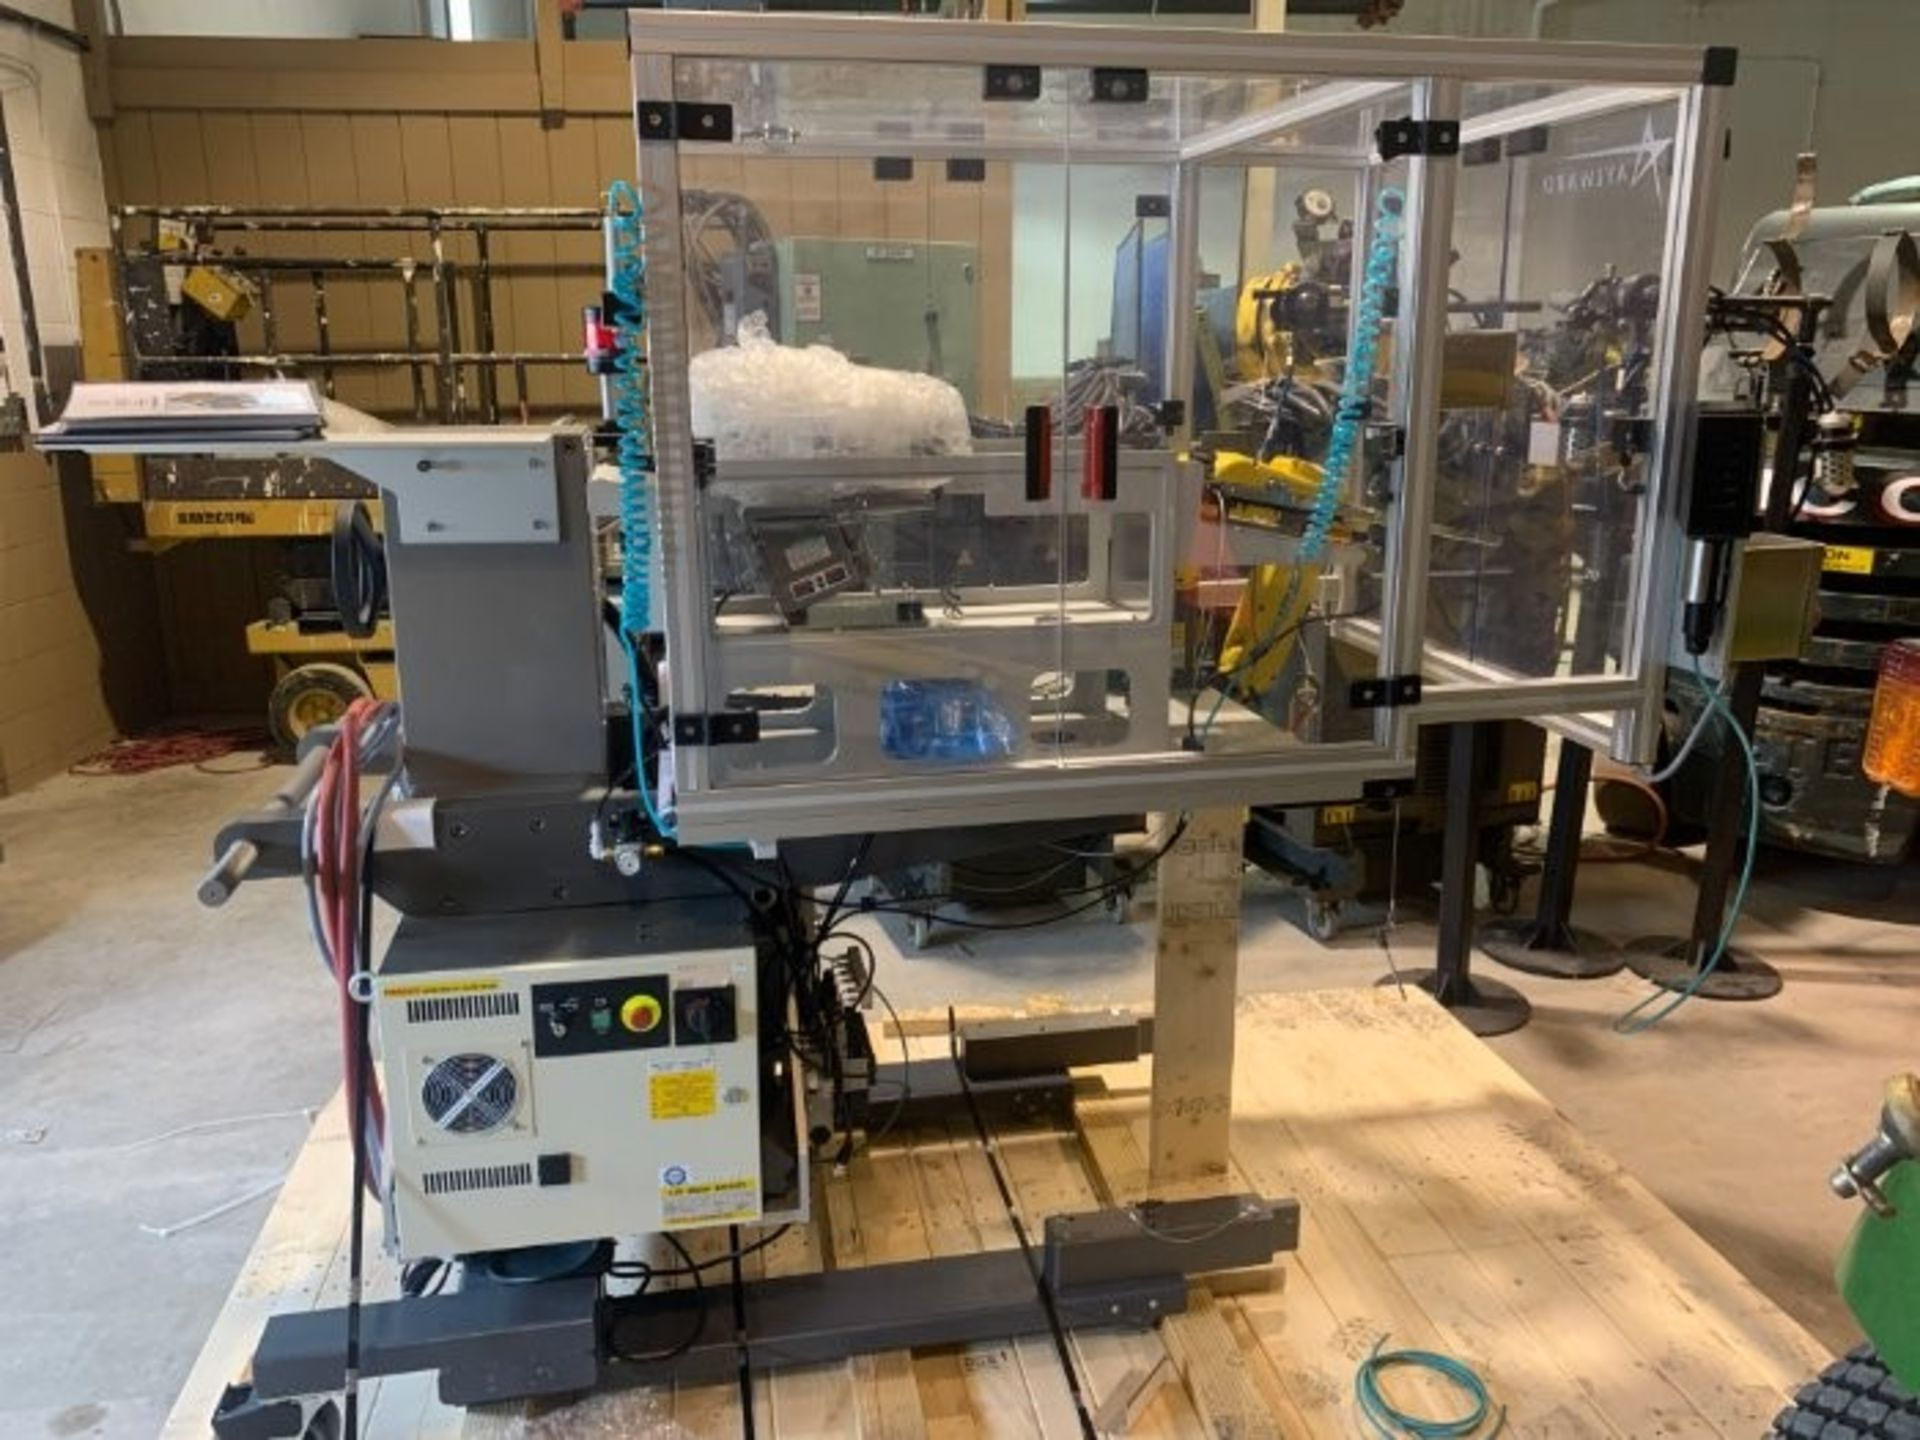 FANUC ROBOTIC VIBRATORY CELL LR MATE 200iD/4S WITH R30iB CONTROL AND ALLEN BRADLEY PLC HIM SN 176518 - Image 8 of 8